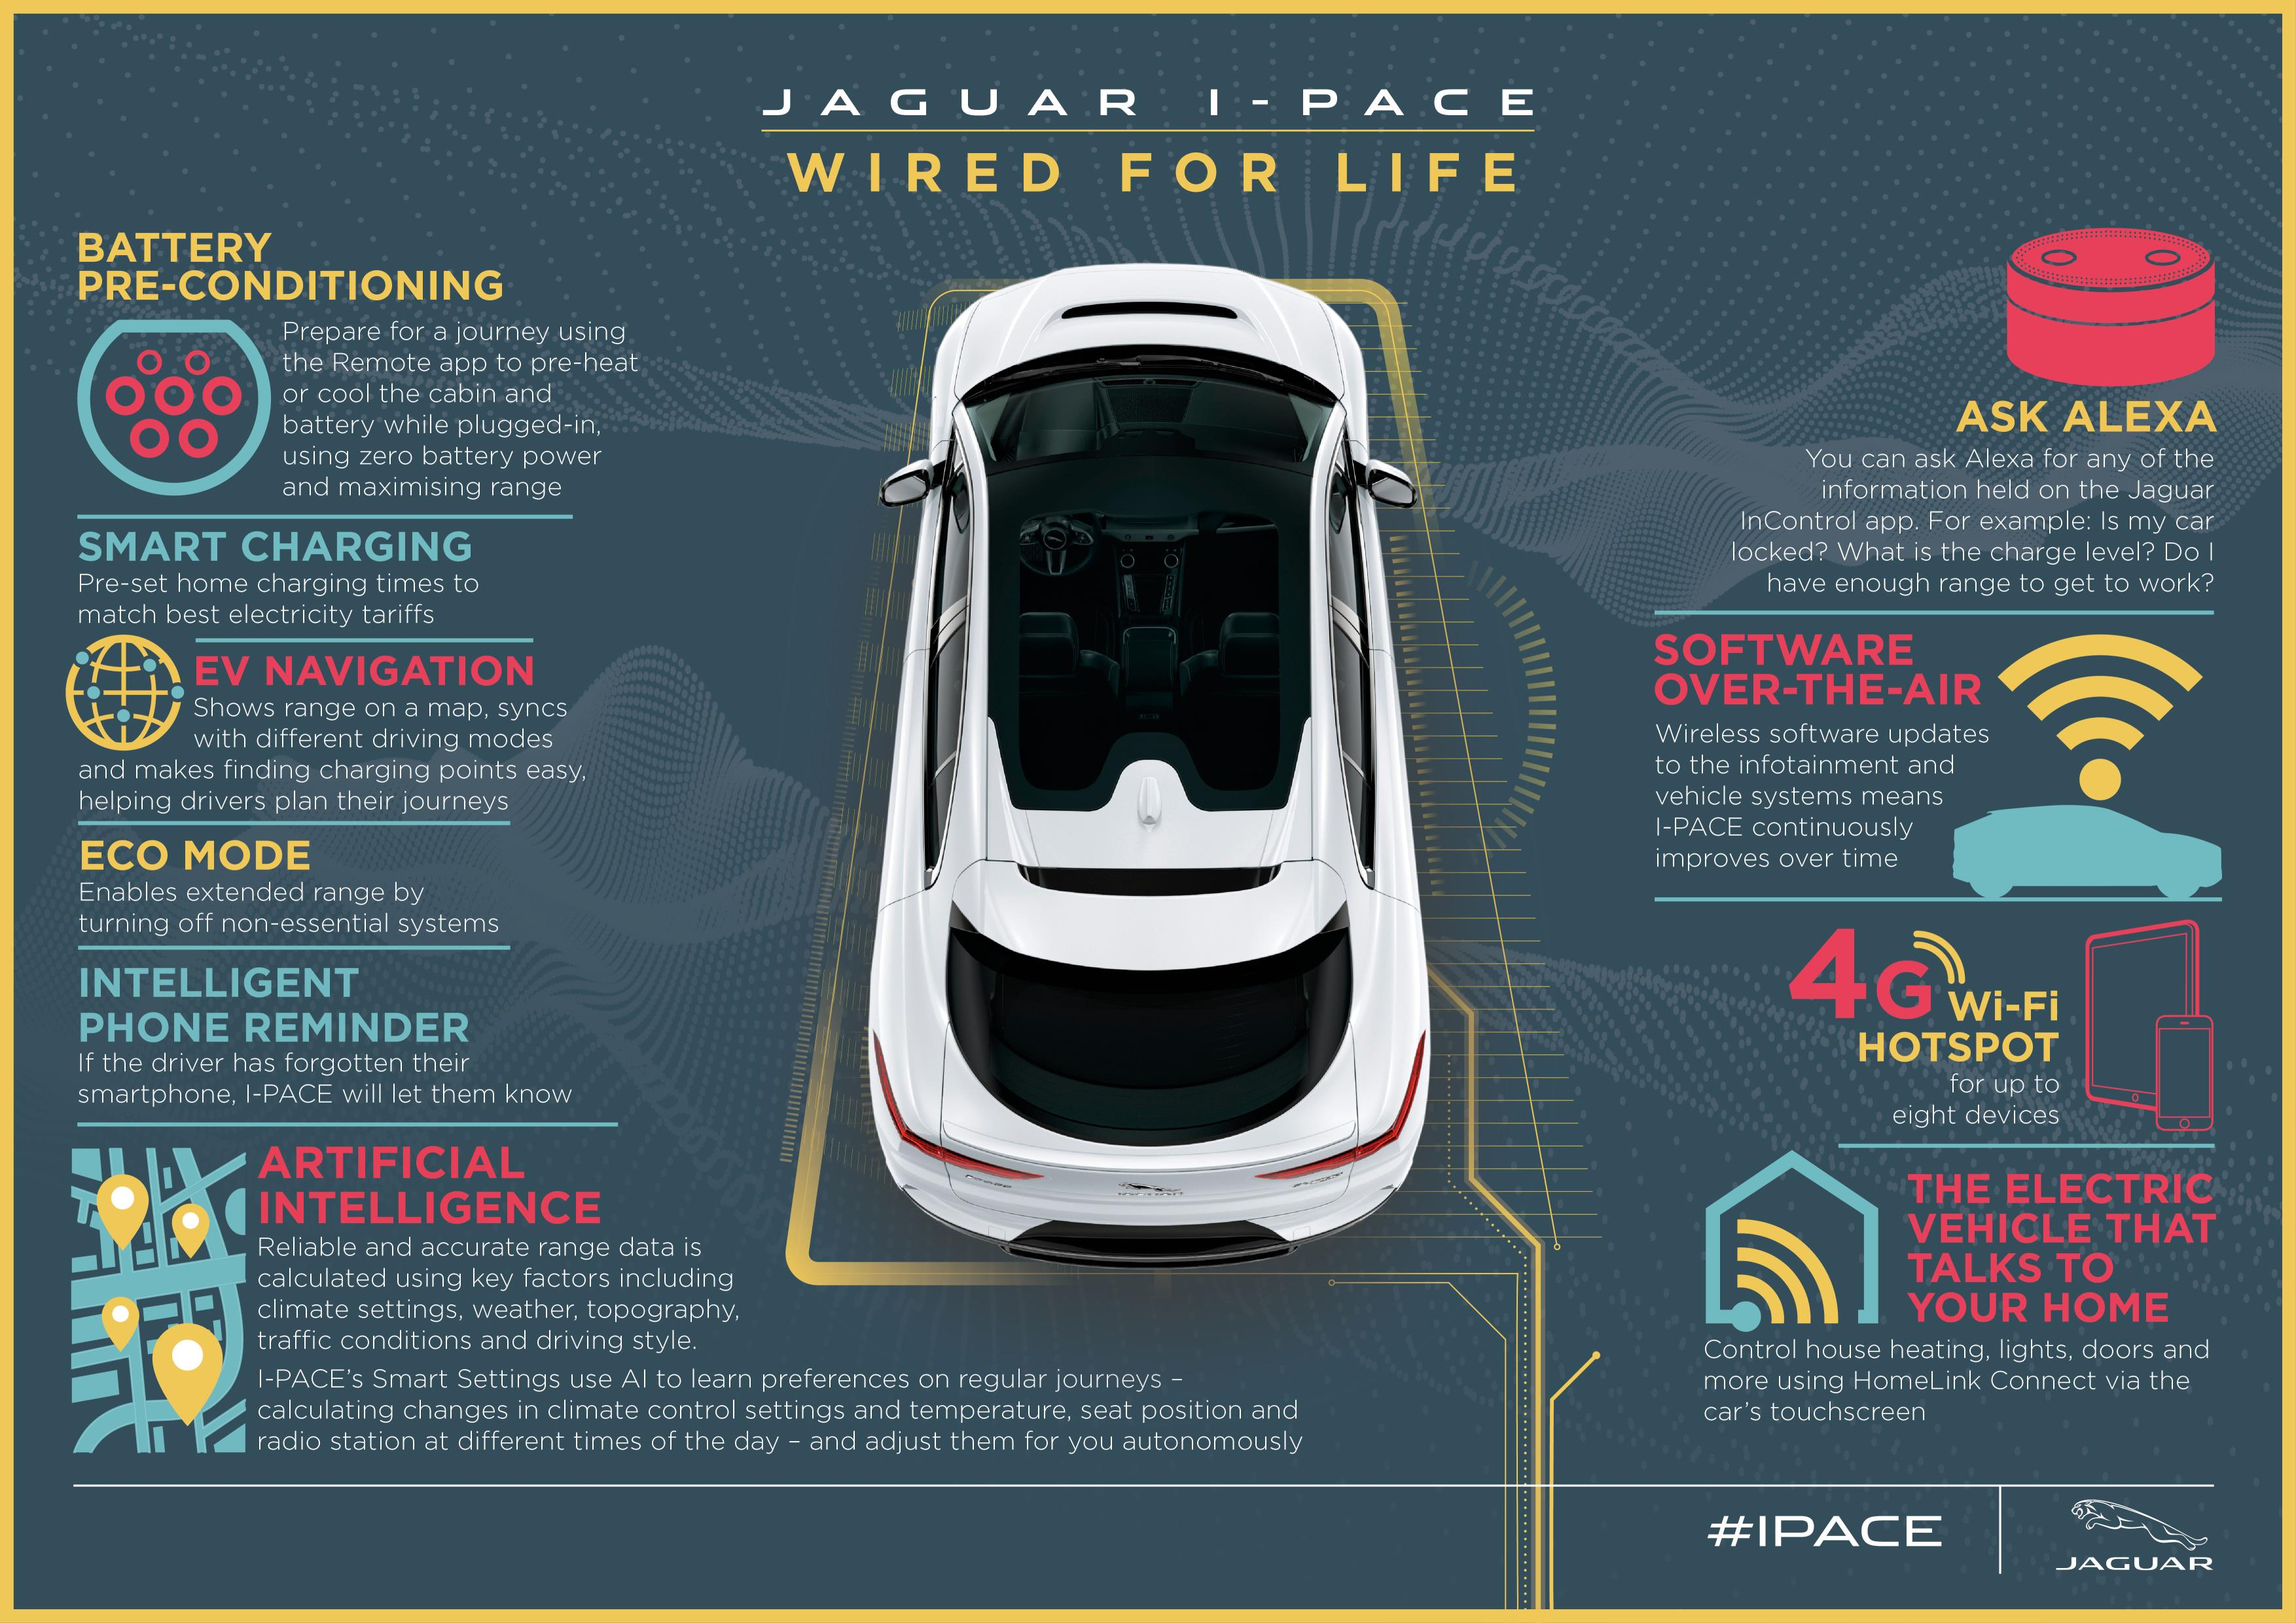 Jaguar I-Pace Wired for Life